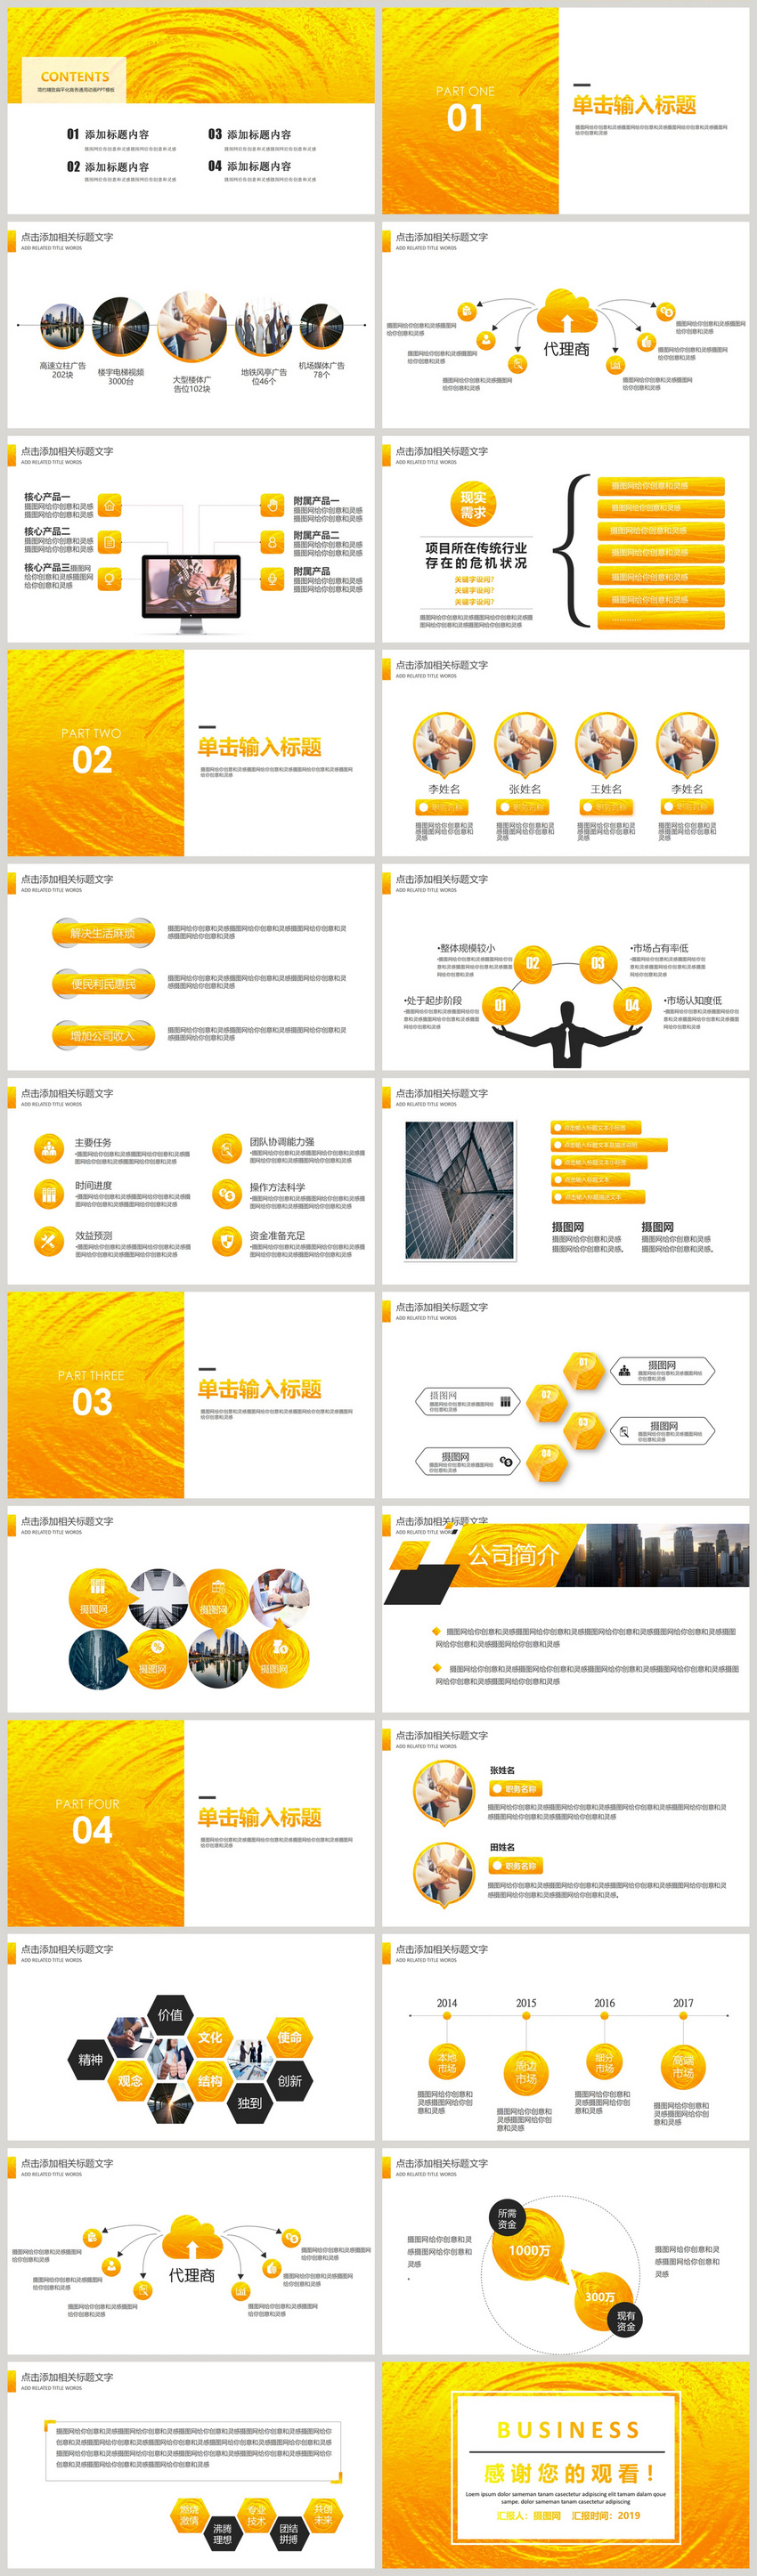 Simple Business Plan Template from img.lovepik.com